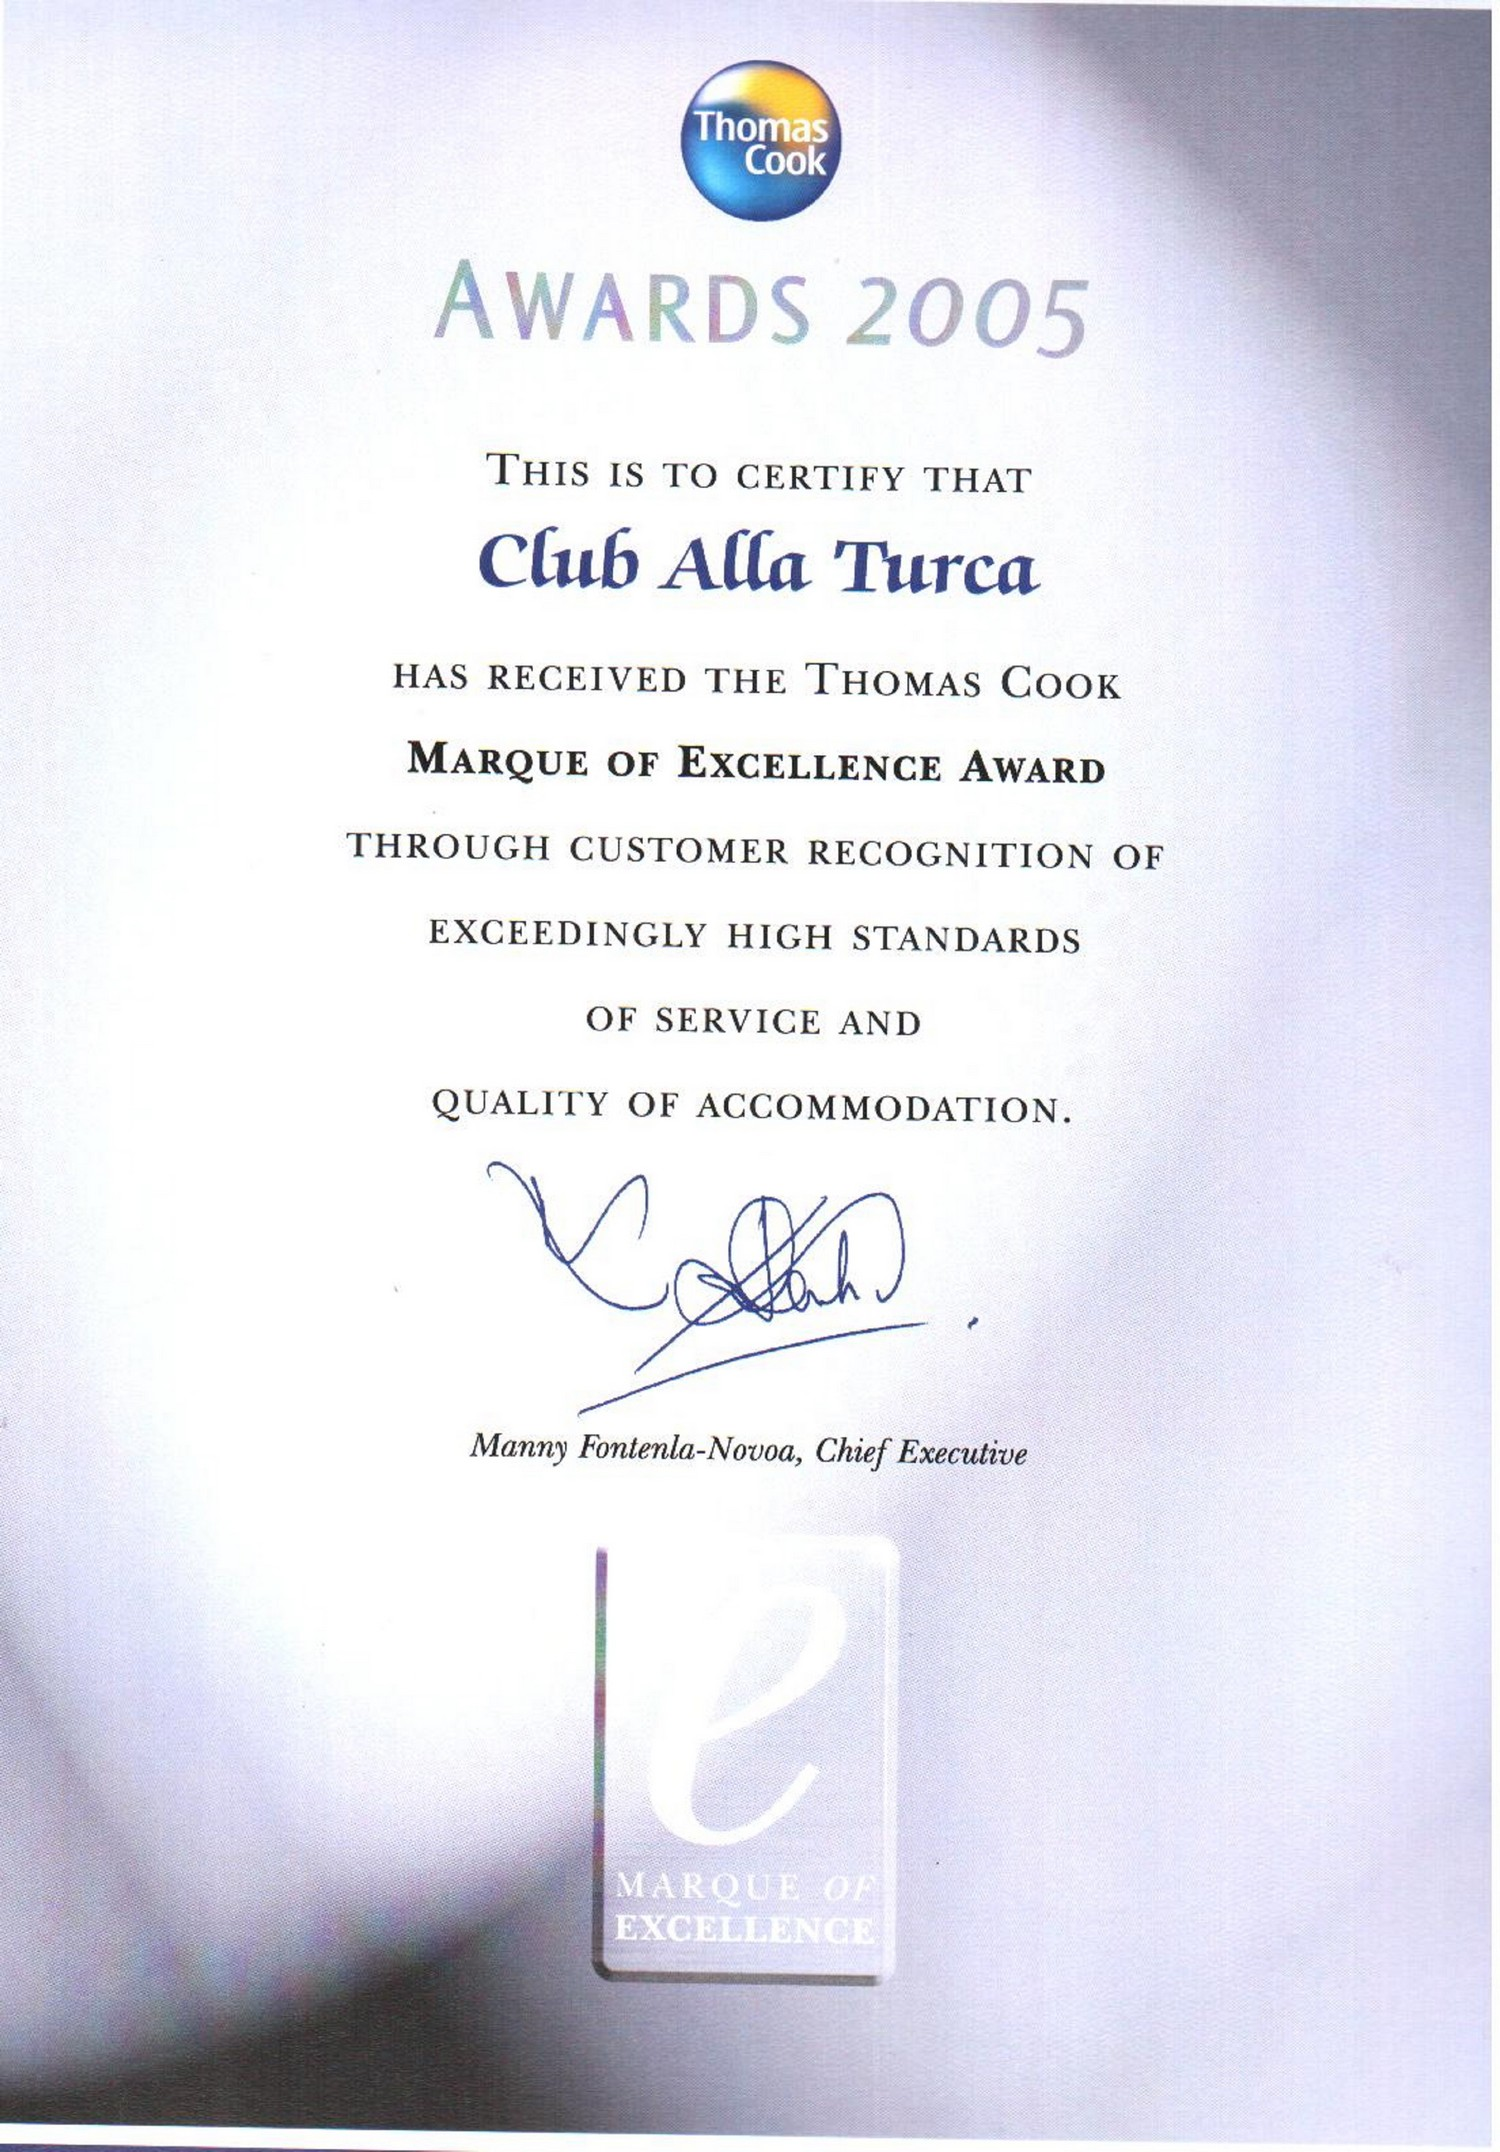 Formal award certificate template jcmanagementco electrical wiring certificate of excellence award jcmanagementco thomas cook 2005 certificate of excellence award formal award certificate template jcmanagementco yadclub Gallery